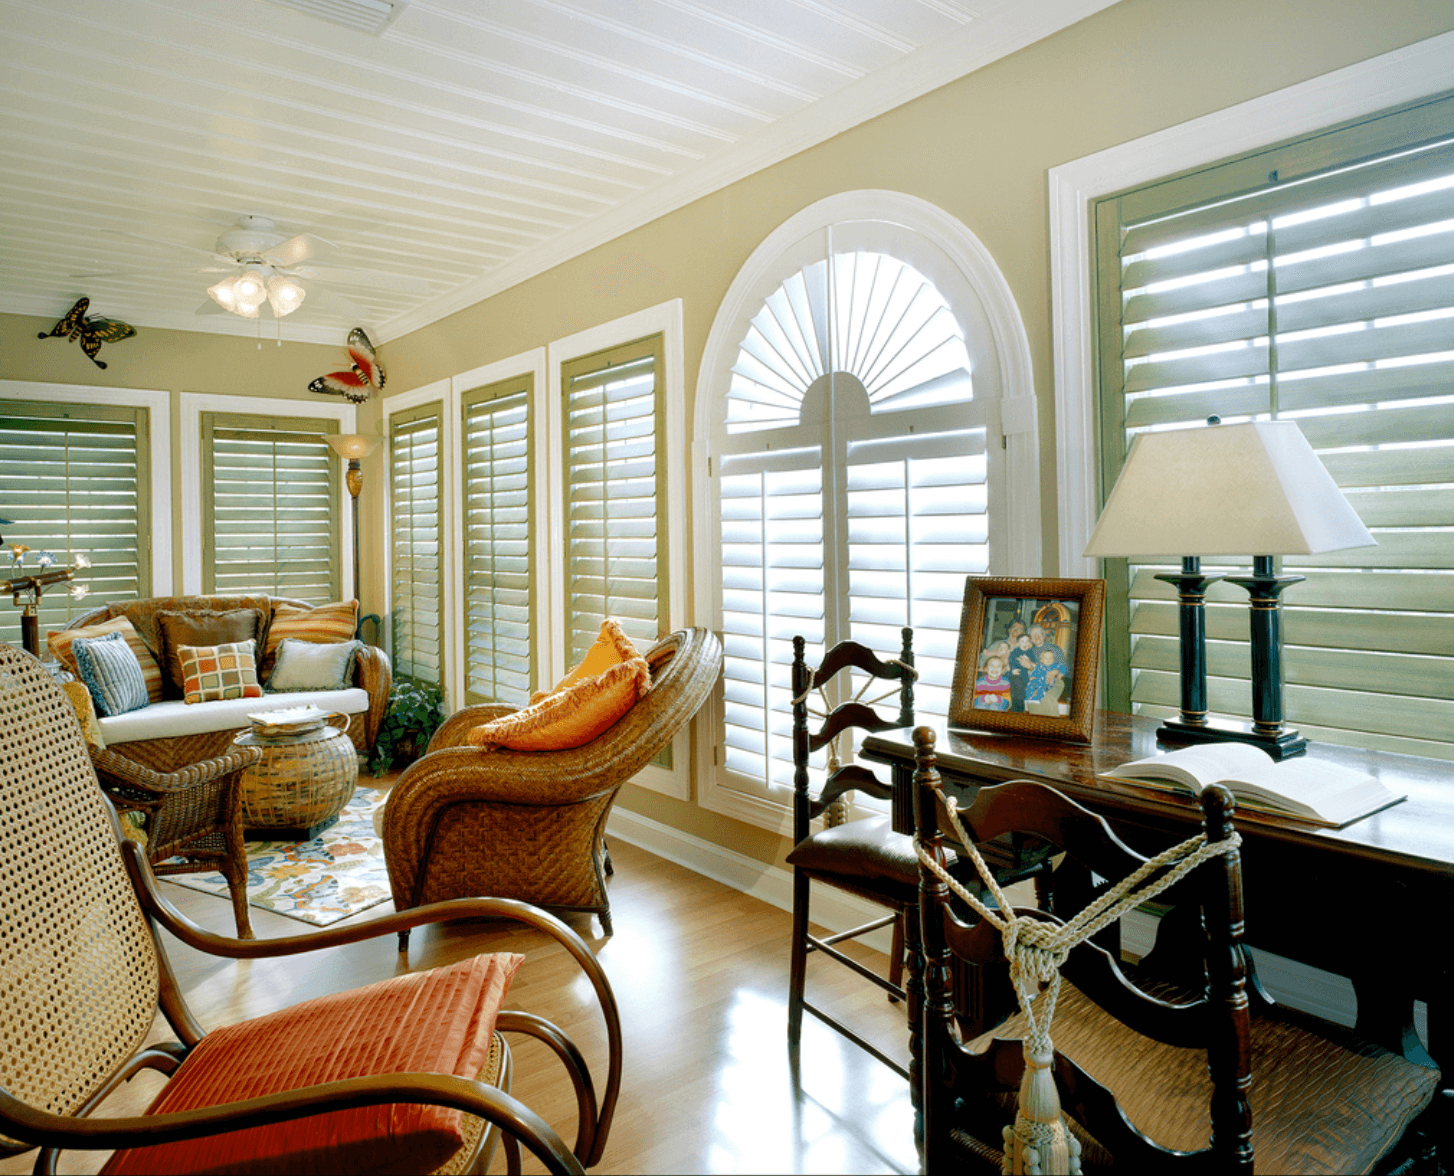 Choosing Custom Wood Shutters for Homes in Charlotte, North Carolina (NC) like Artisan